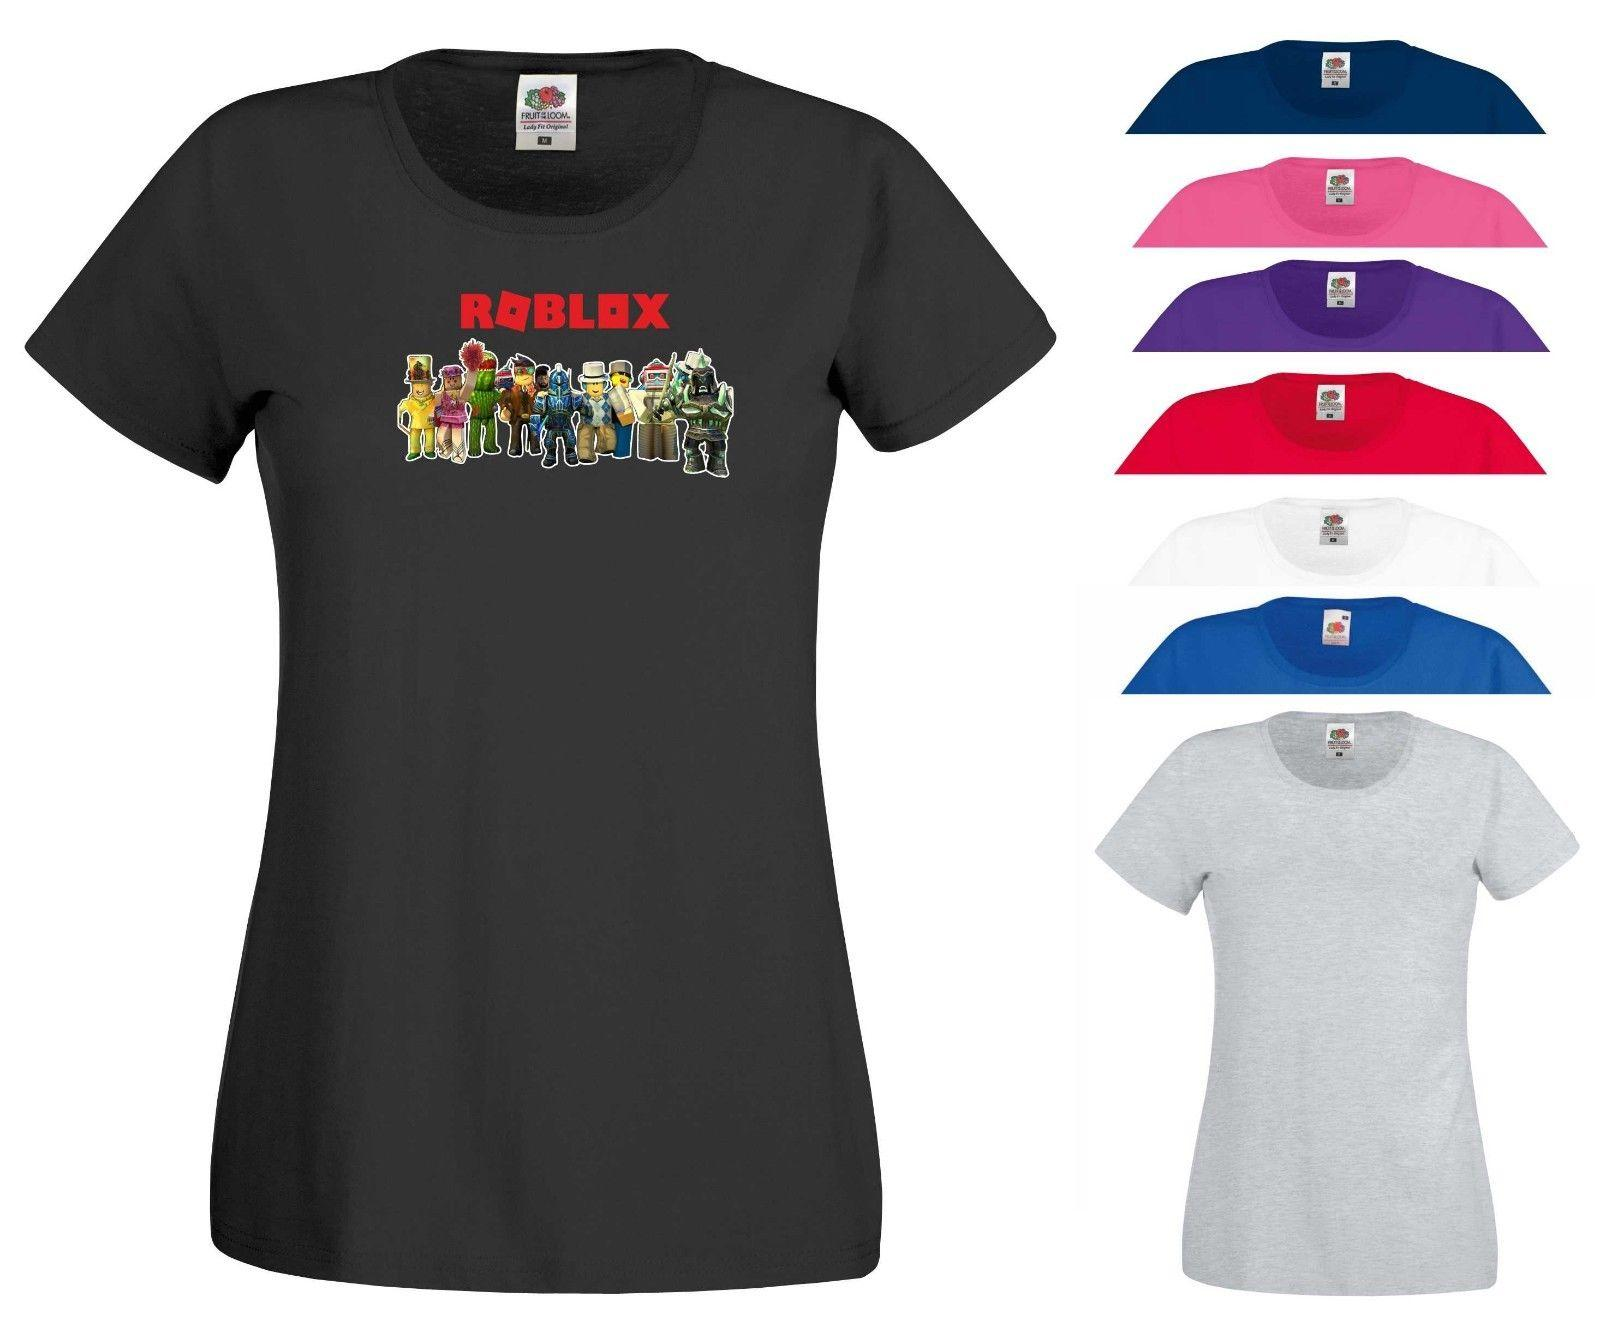 2947ea82918941 Roblox T Shirt Prison Life Builder Video Games Funny Xbox PS4 Gift Women Tee  Top Men Women Unisex Fashion Tshirt Offensive Shirts Ringer T Shirts From  ...